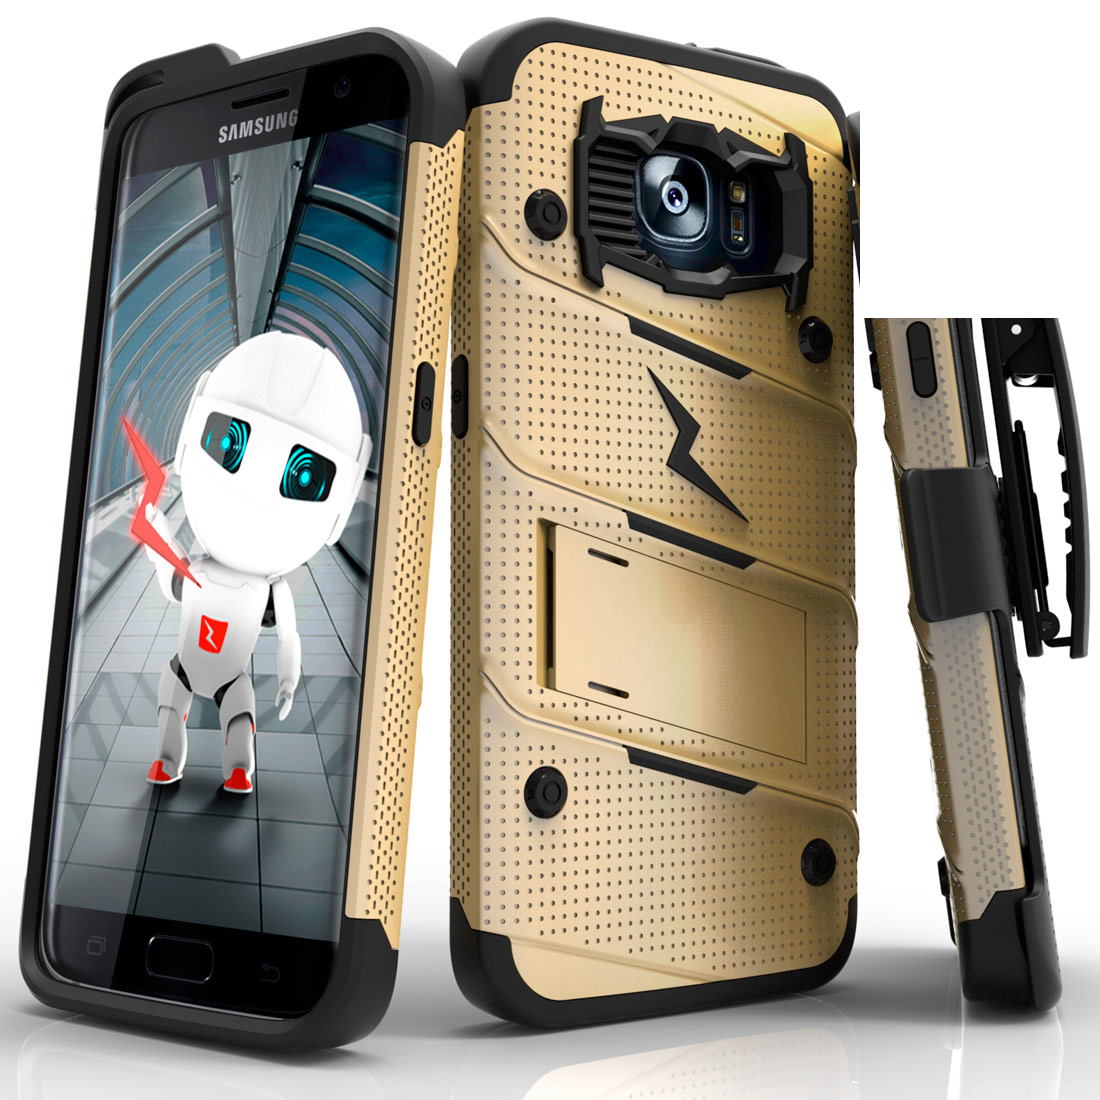 Made for [Samsung Galaxy S7 Edge]-Bolt Series:  Heavy Duty Cover w/ Kickstand Holster & Lanyard [Gold/ Black] - Tempered Screen Protector Included